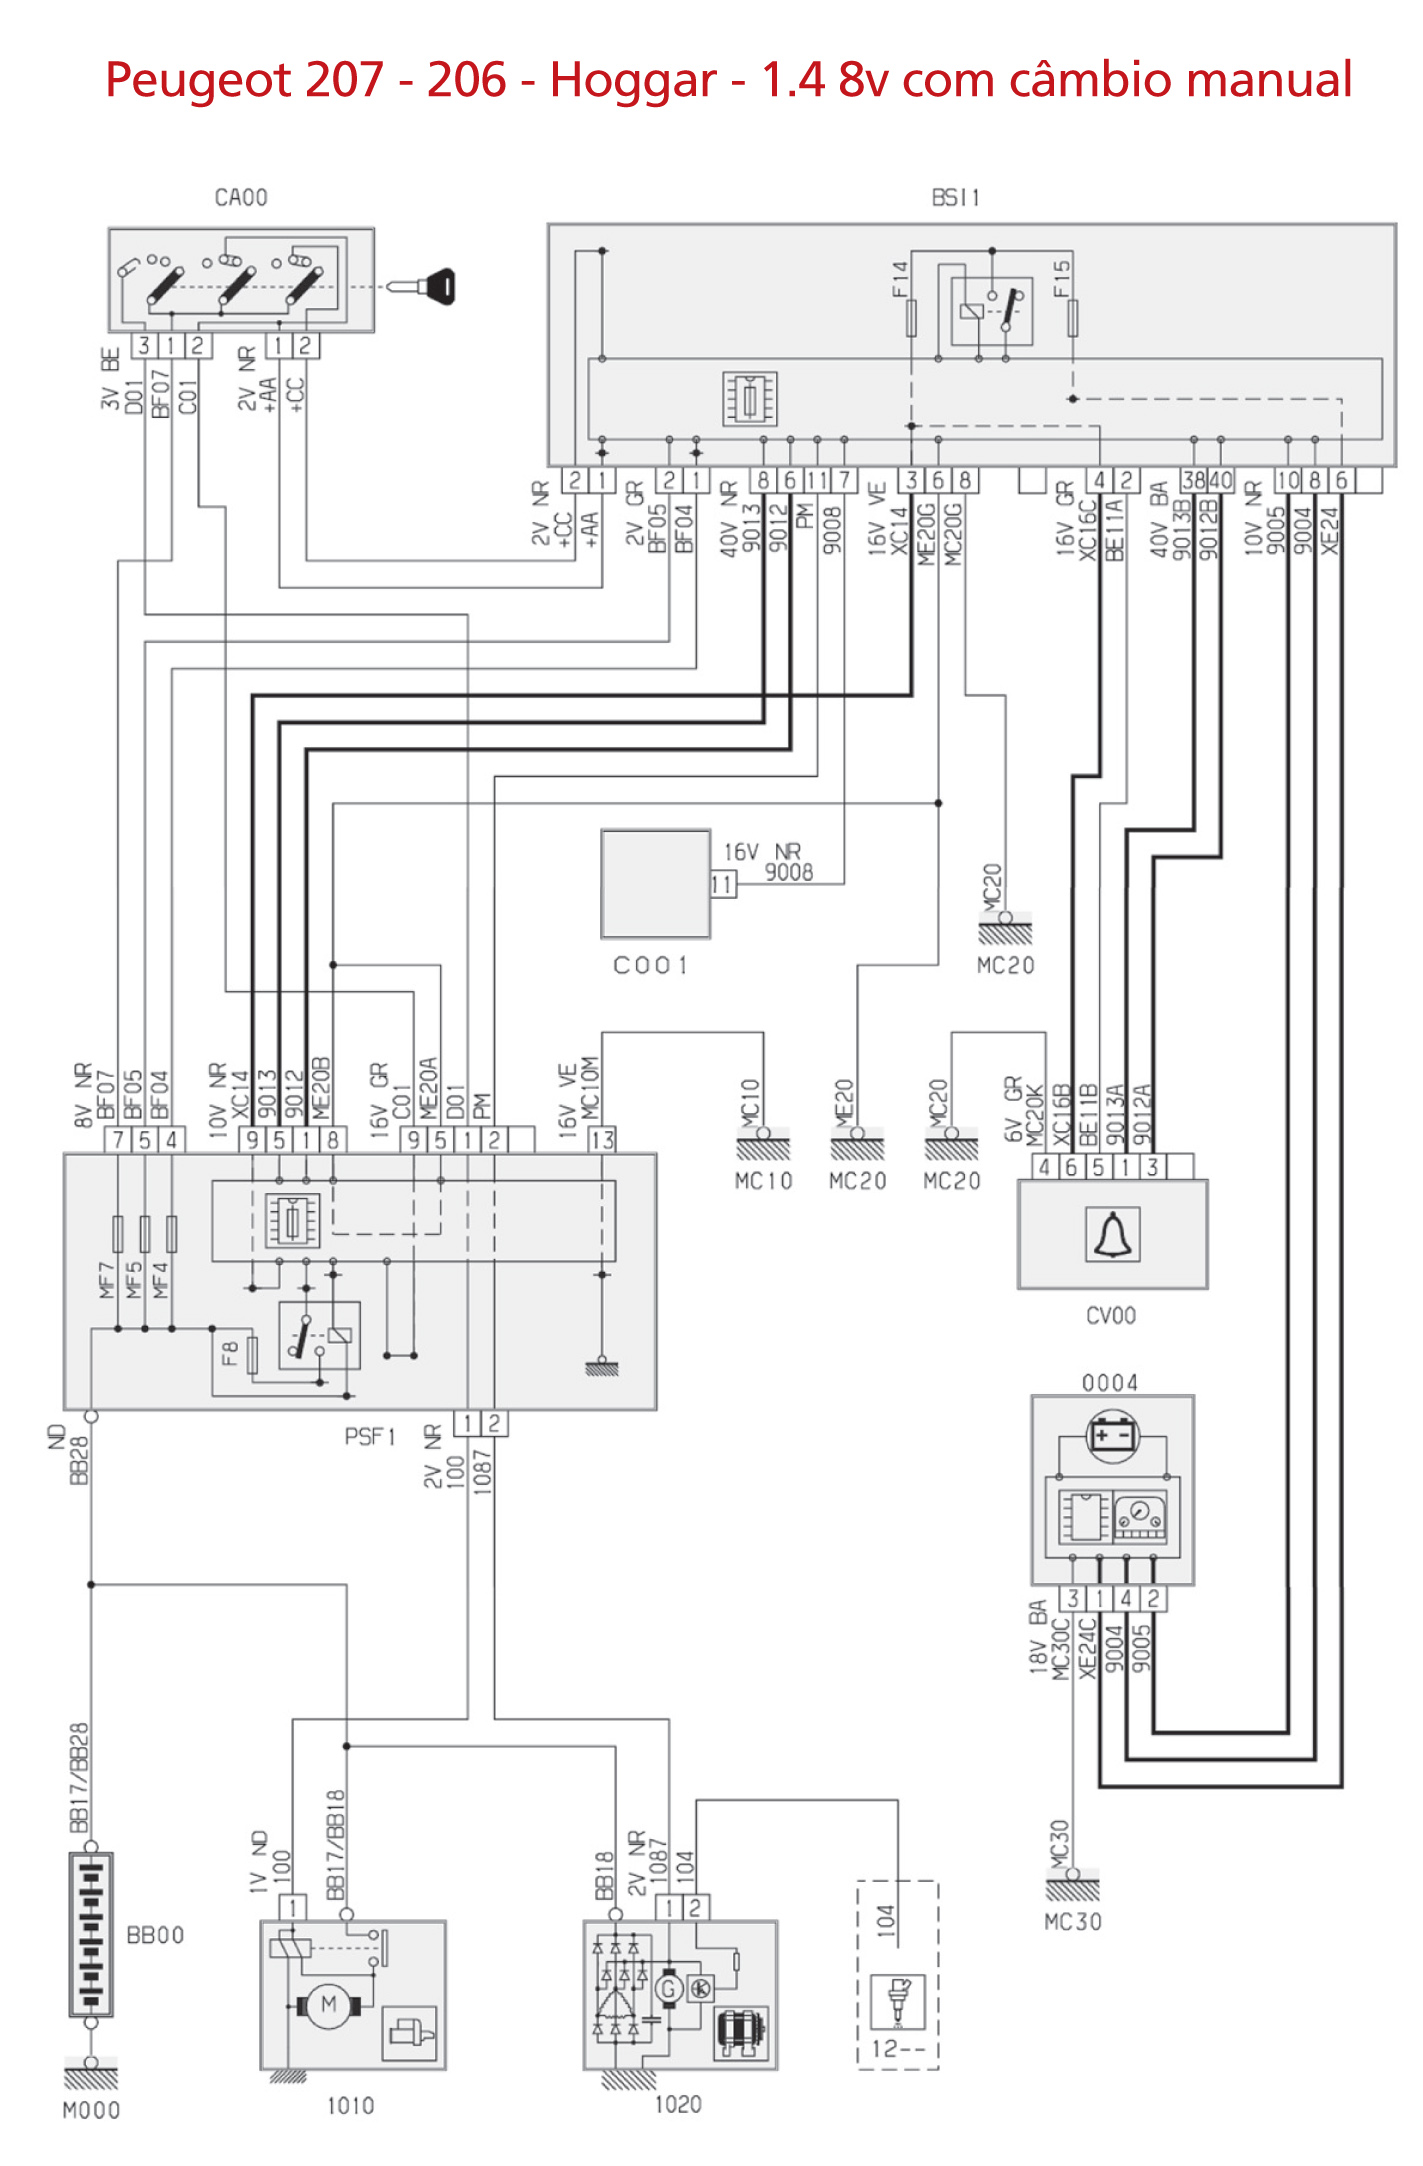 Https Post Manual Peugeot 206 1 4 Lcd Tv Schematic Diagram Http Wwwseekiccom Circuitdiagram Control 6593